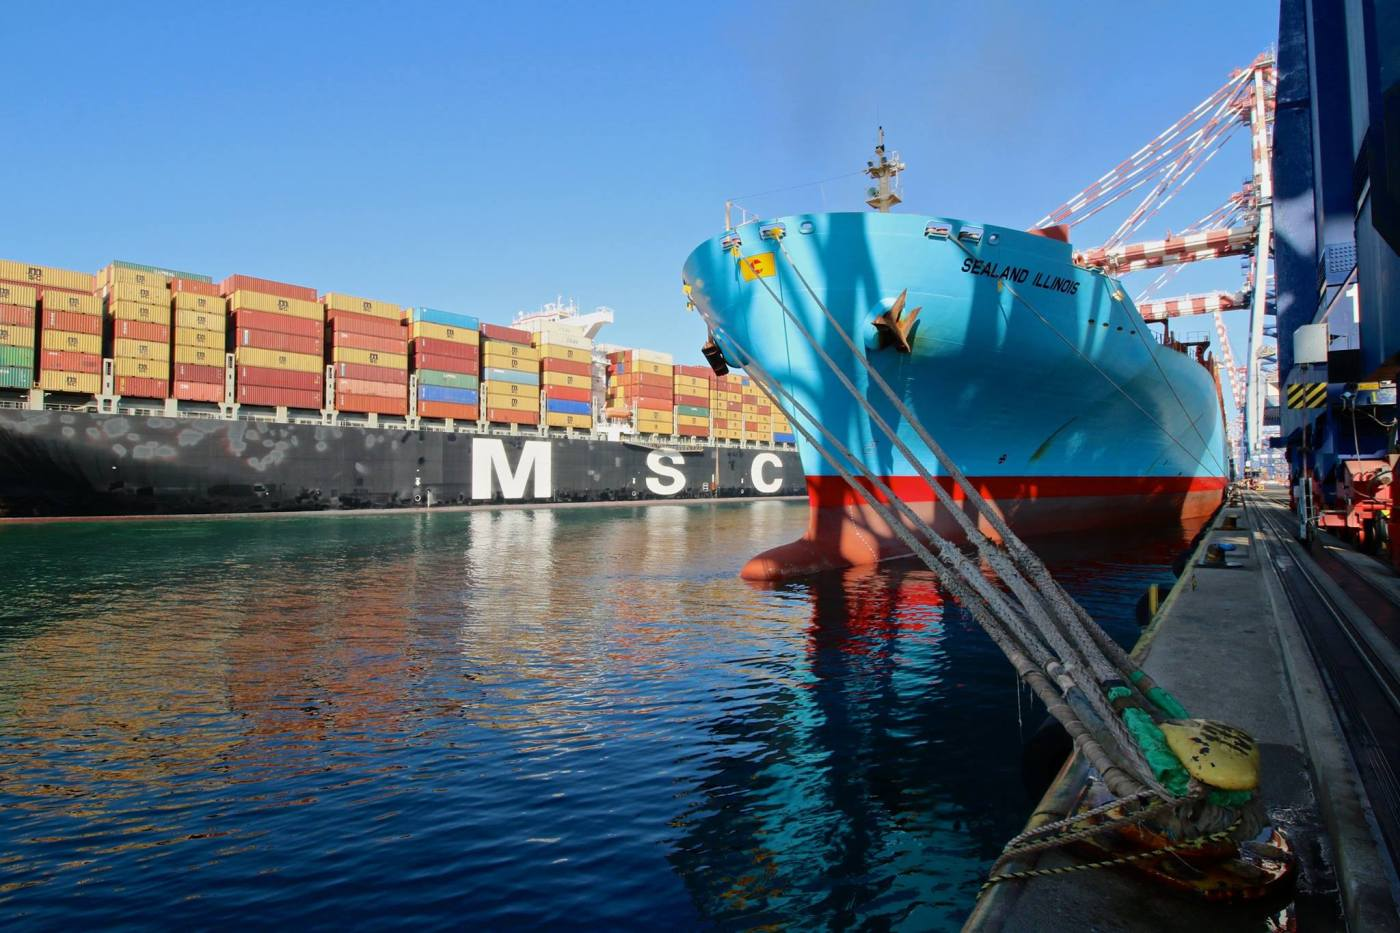 containerships docked at port